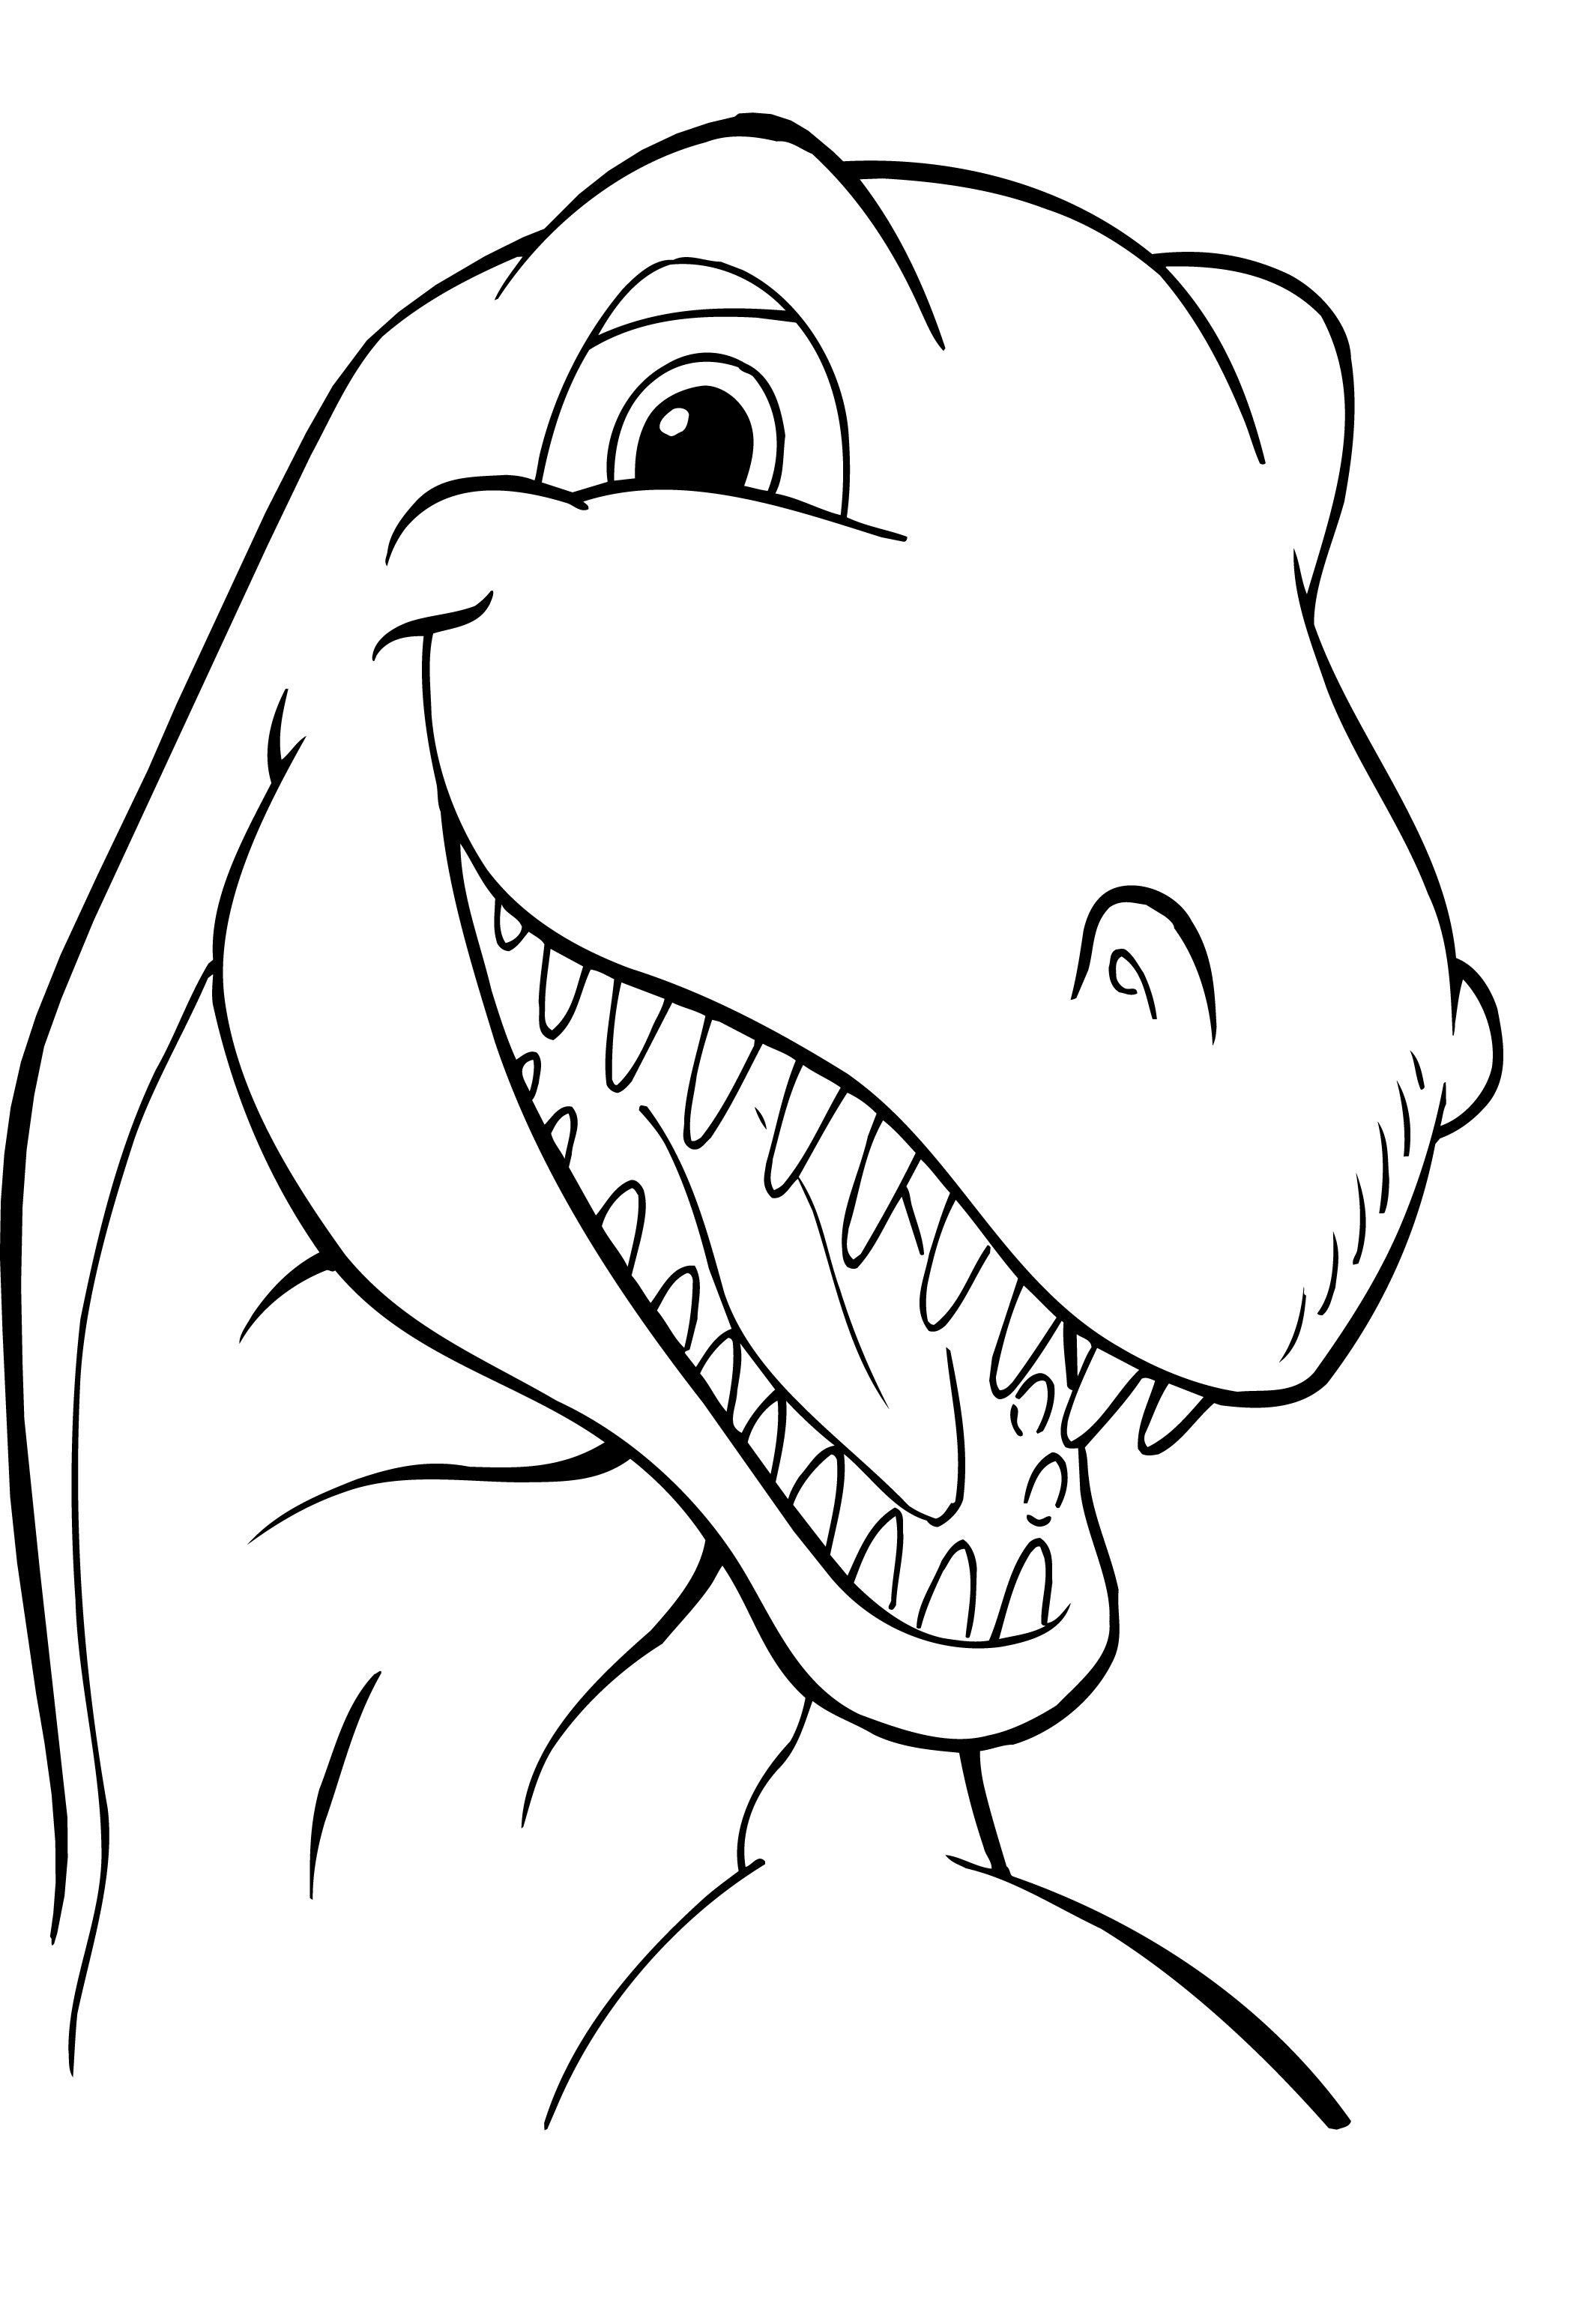 free printable coloring pages of dinosaurs coloring pages dinosaur free printable coloring pages of coloring pages free printable dinosaurs